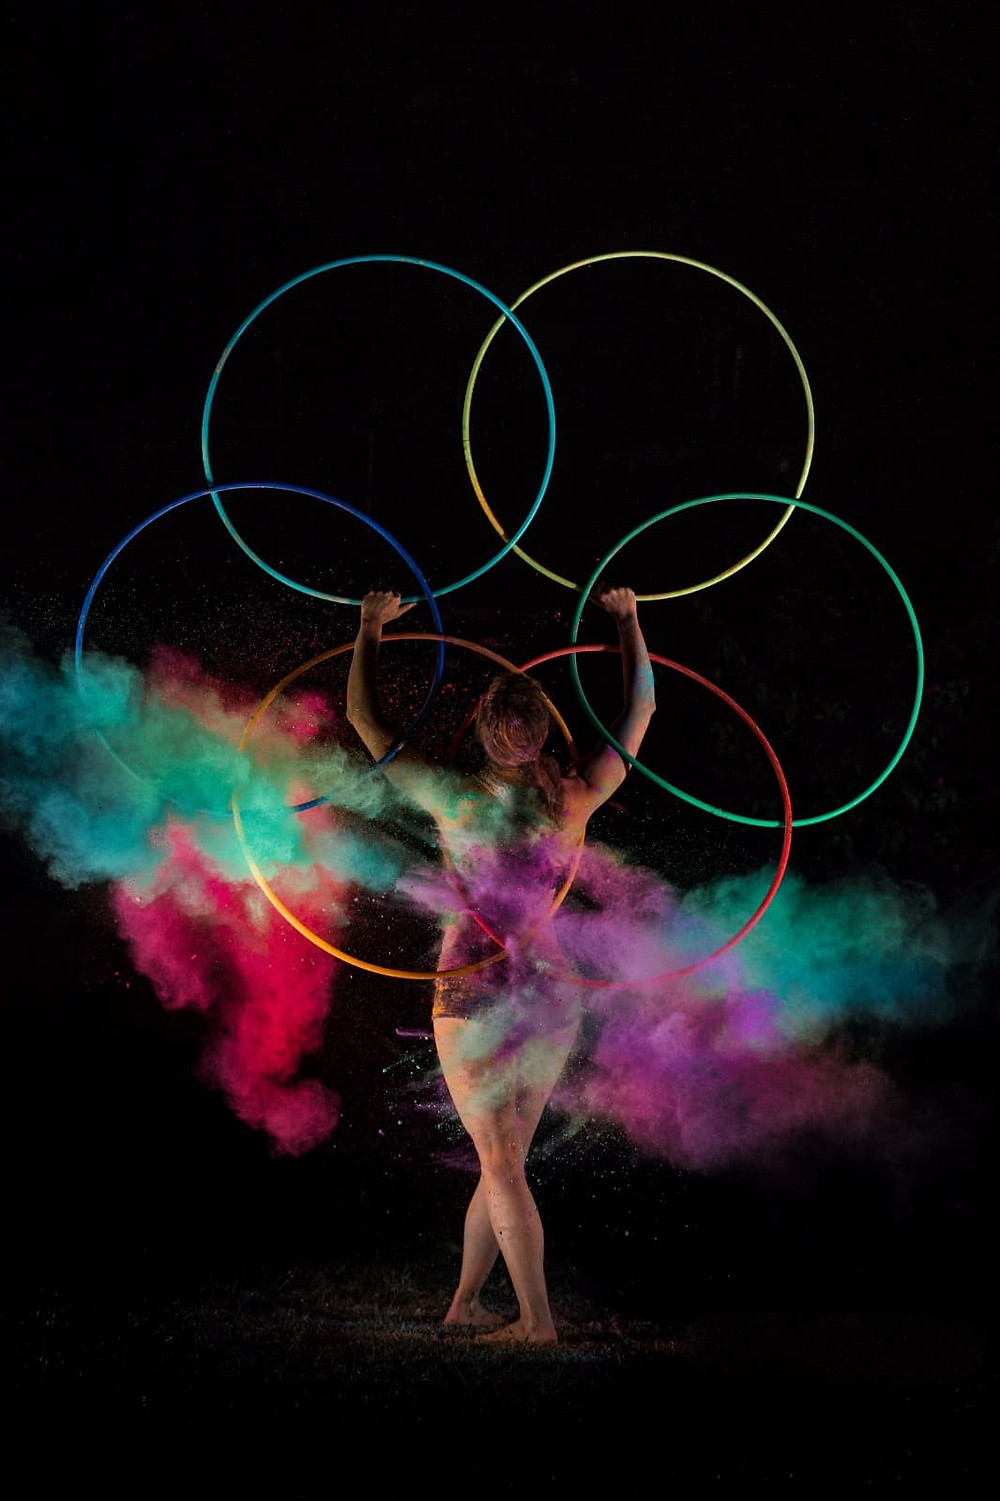 Artistic photo about Lisa multihooping